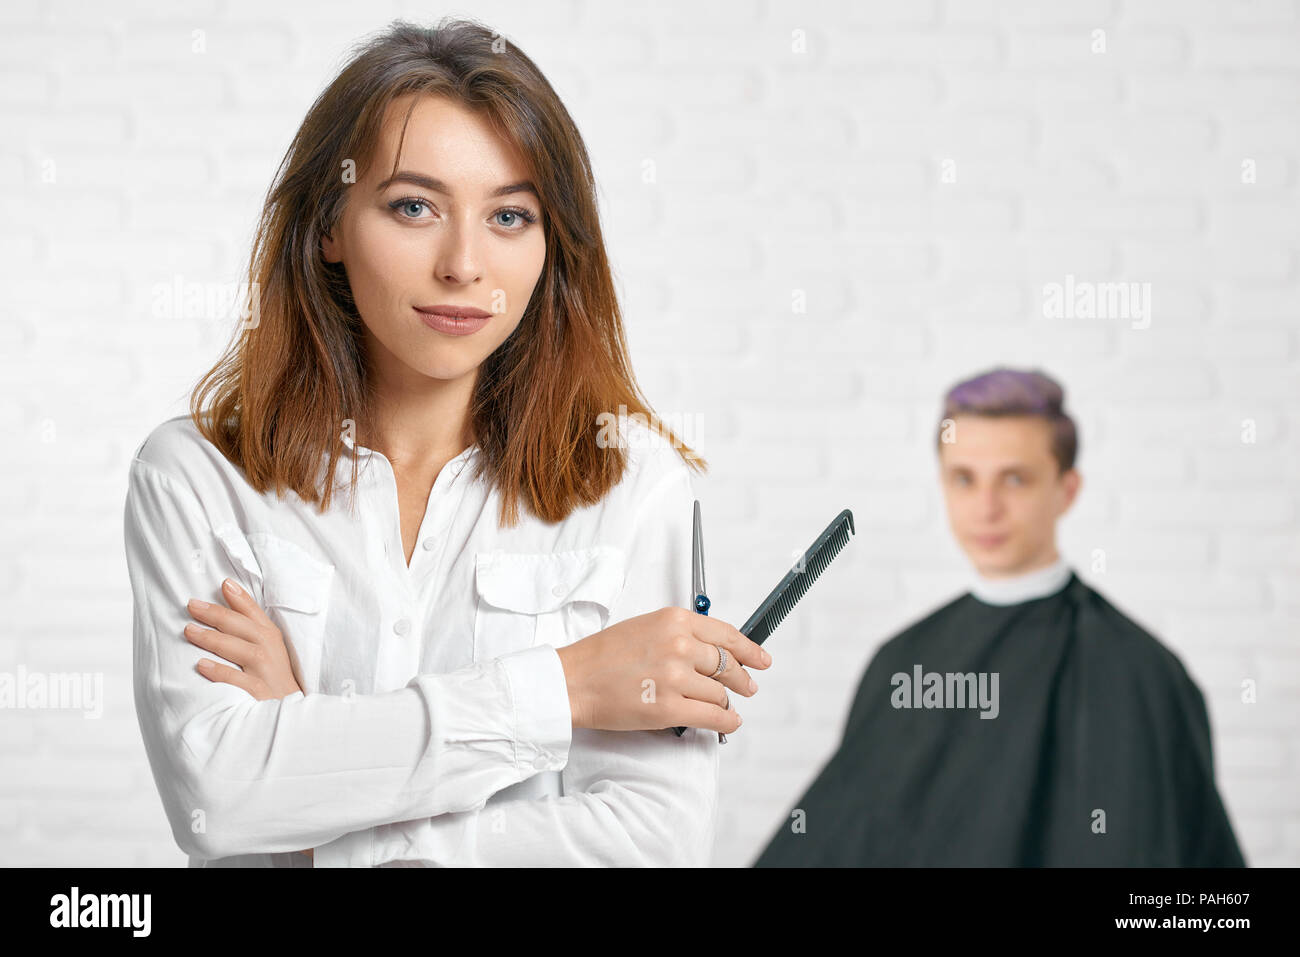 Woman hairstylist looking at camera holdingblack plastic comb and sharp metallic scissors. Looking at camera wearing stylish white shirt. Young client with toned lilac hair sitting behind. - Stock Image